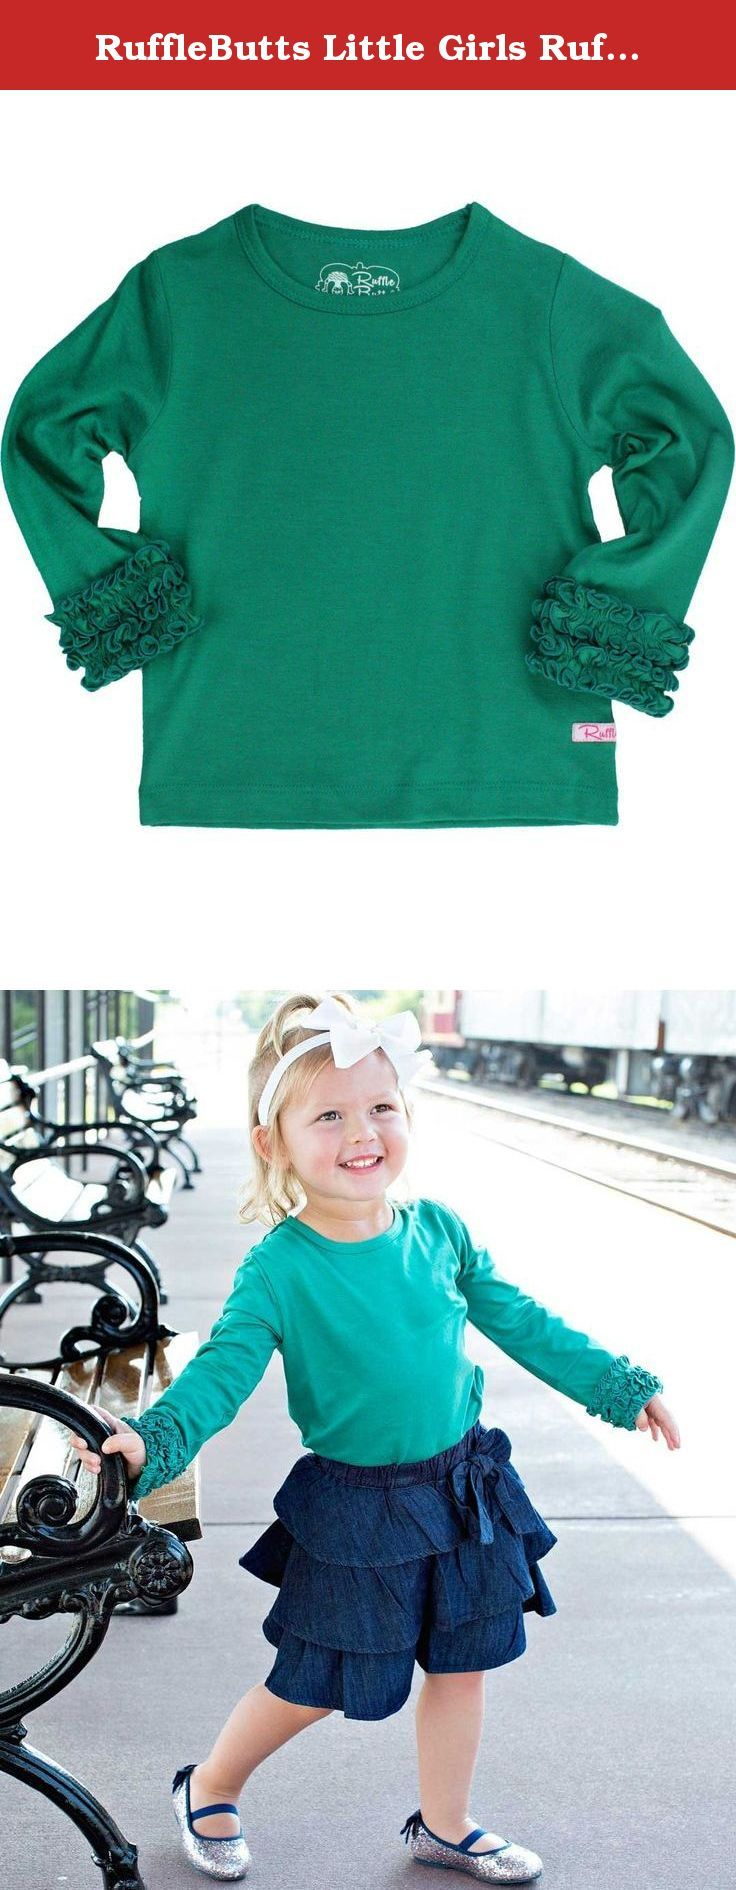 RuffleButts Little Girls Ruffled Long Sleeve Undershirt Tee - Emerald - 4T. Making our RuffleButts apparel even more convenient, this long sleeve Undershirt is the perfect addition to her winter wardrobe. Wear underneath her favorite Swing Top or Ruffle Dress for those cold winter days.